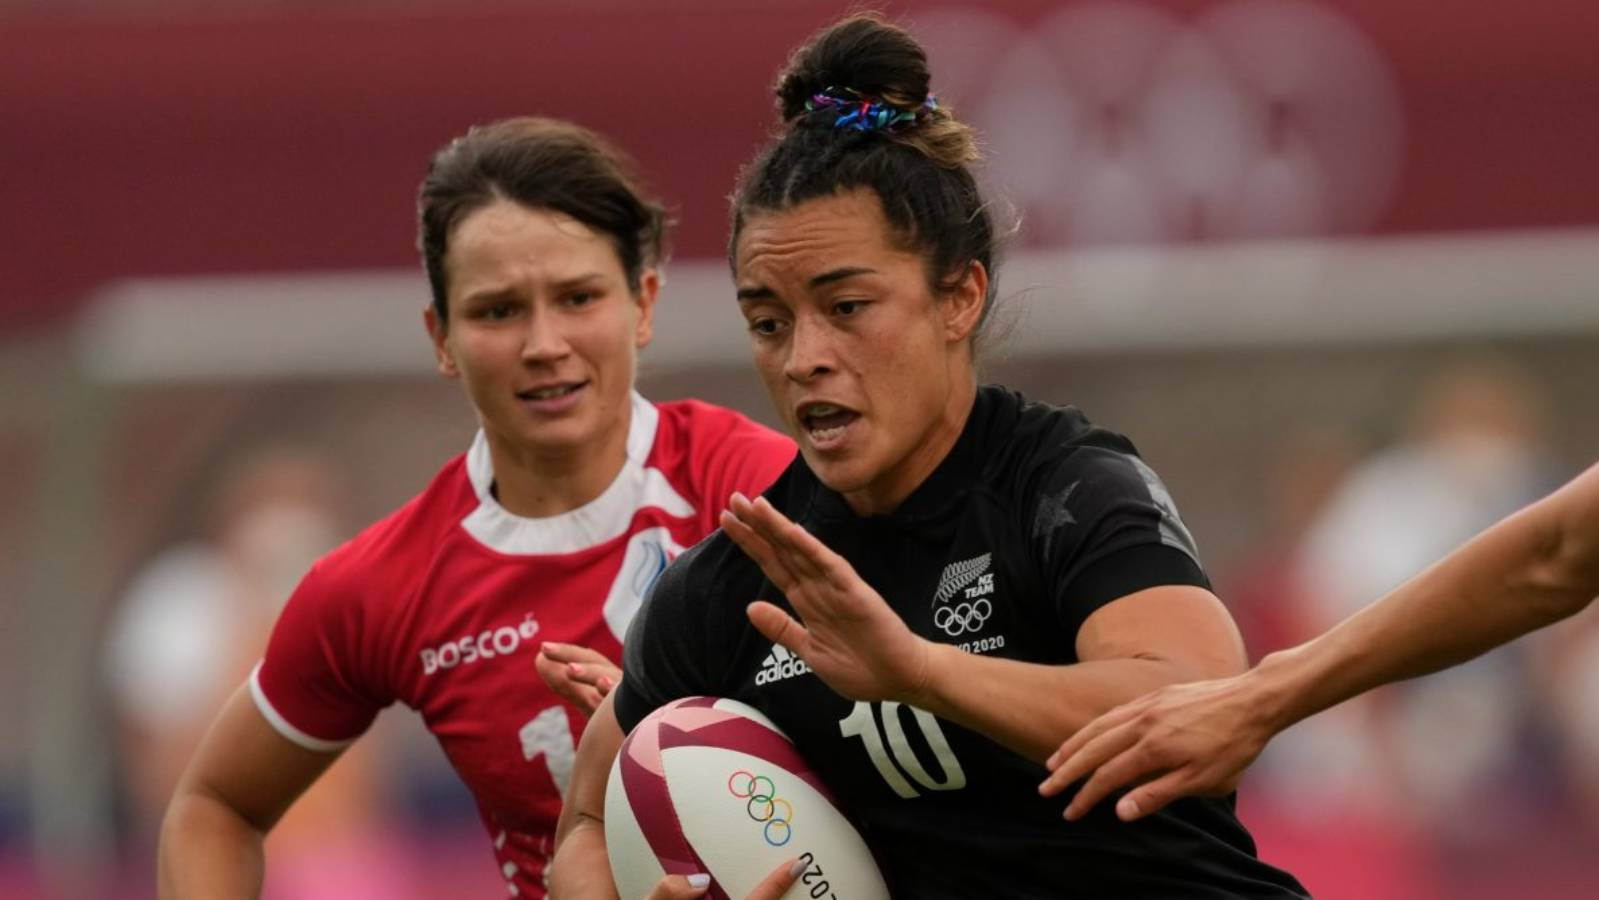 NZ thrash Russia, face Fiji in last four after Australia's exit